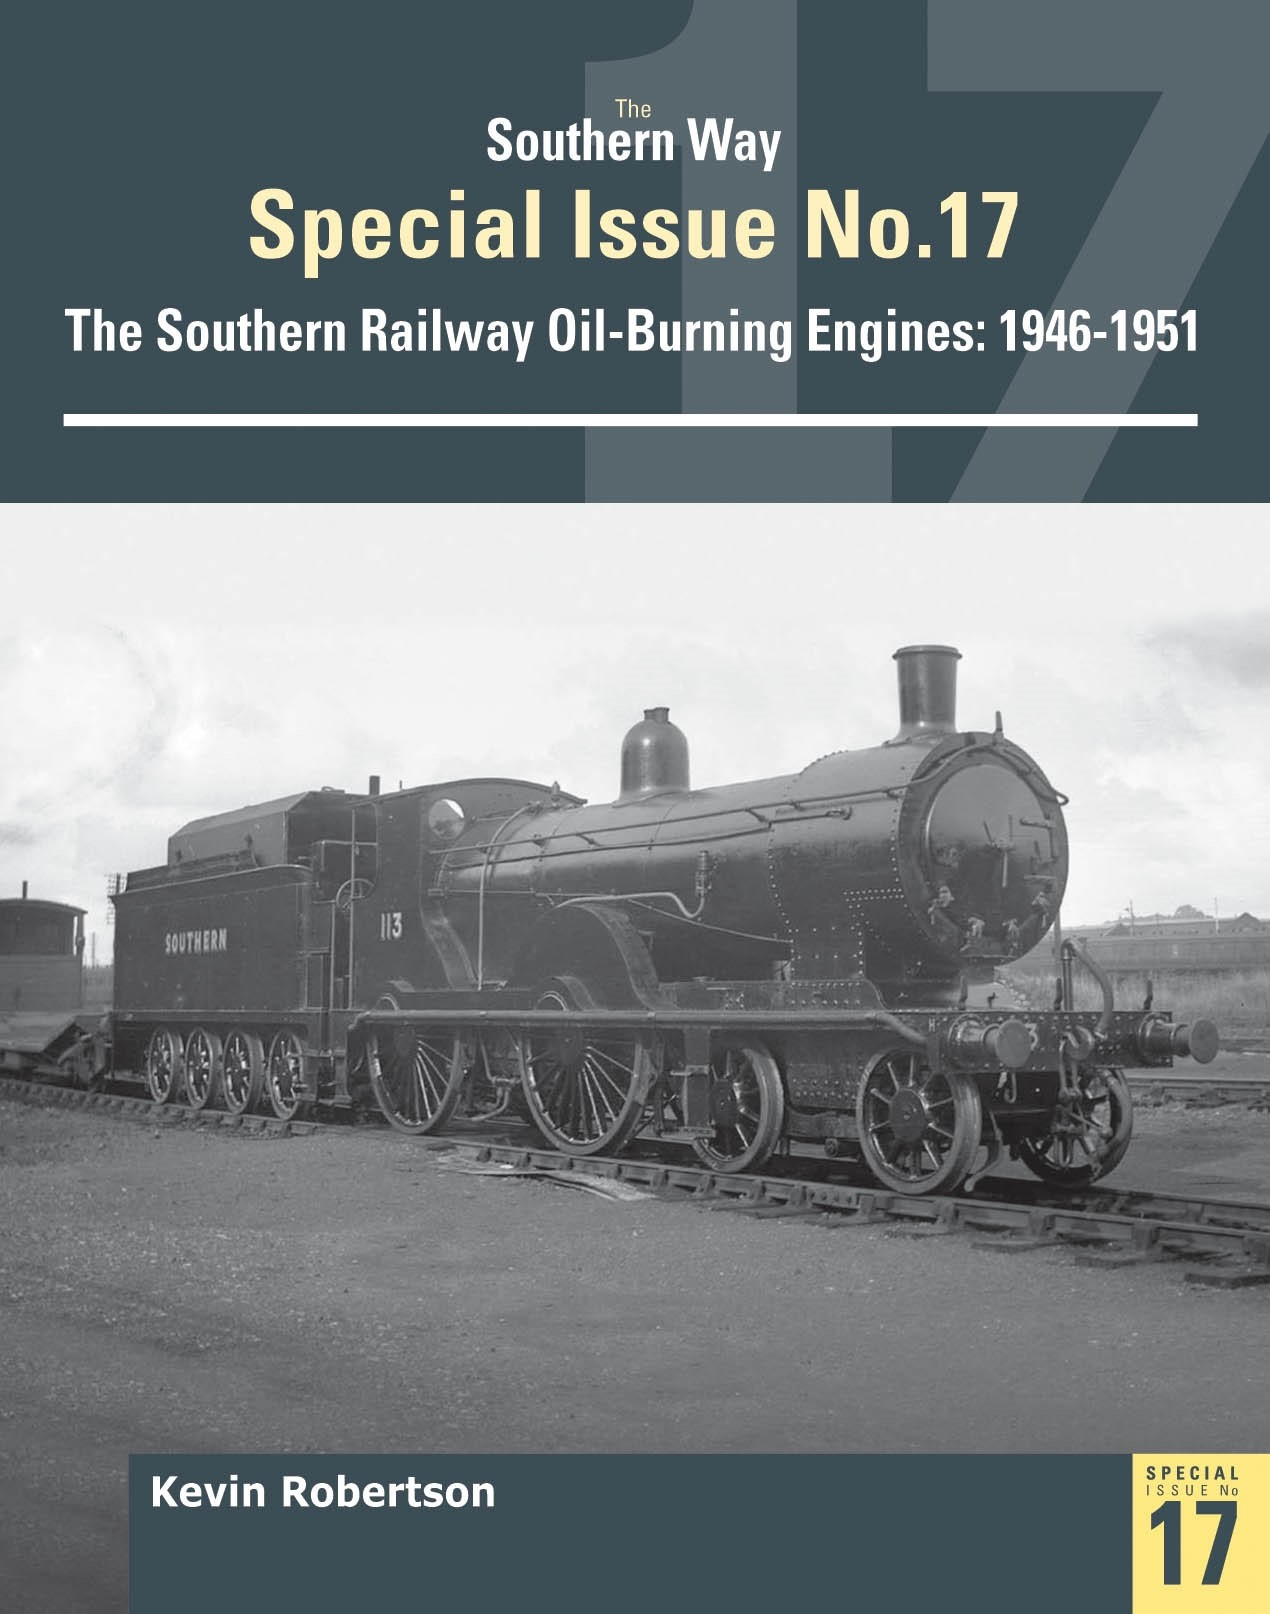 The Southern Way Special 17